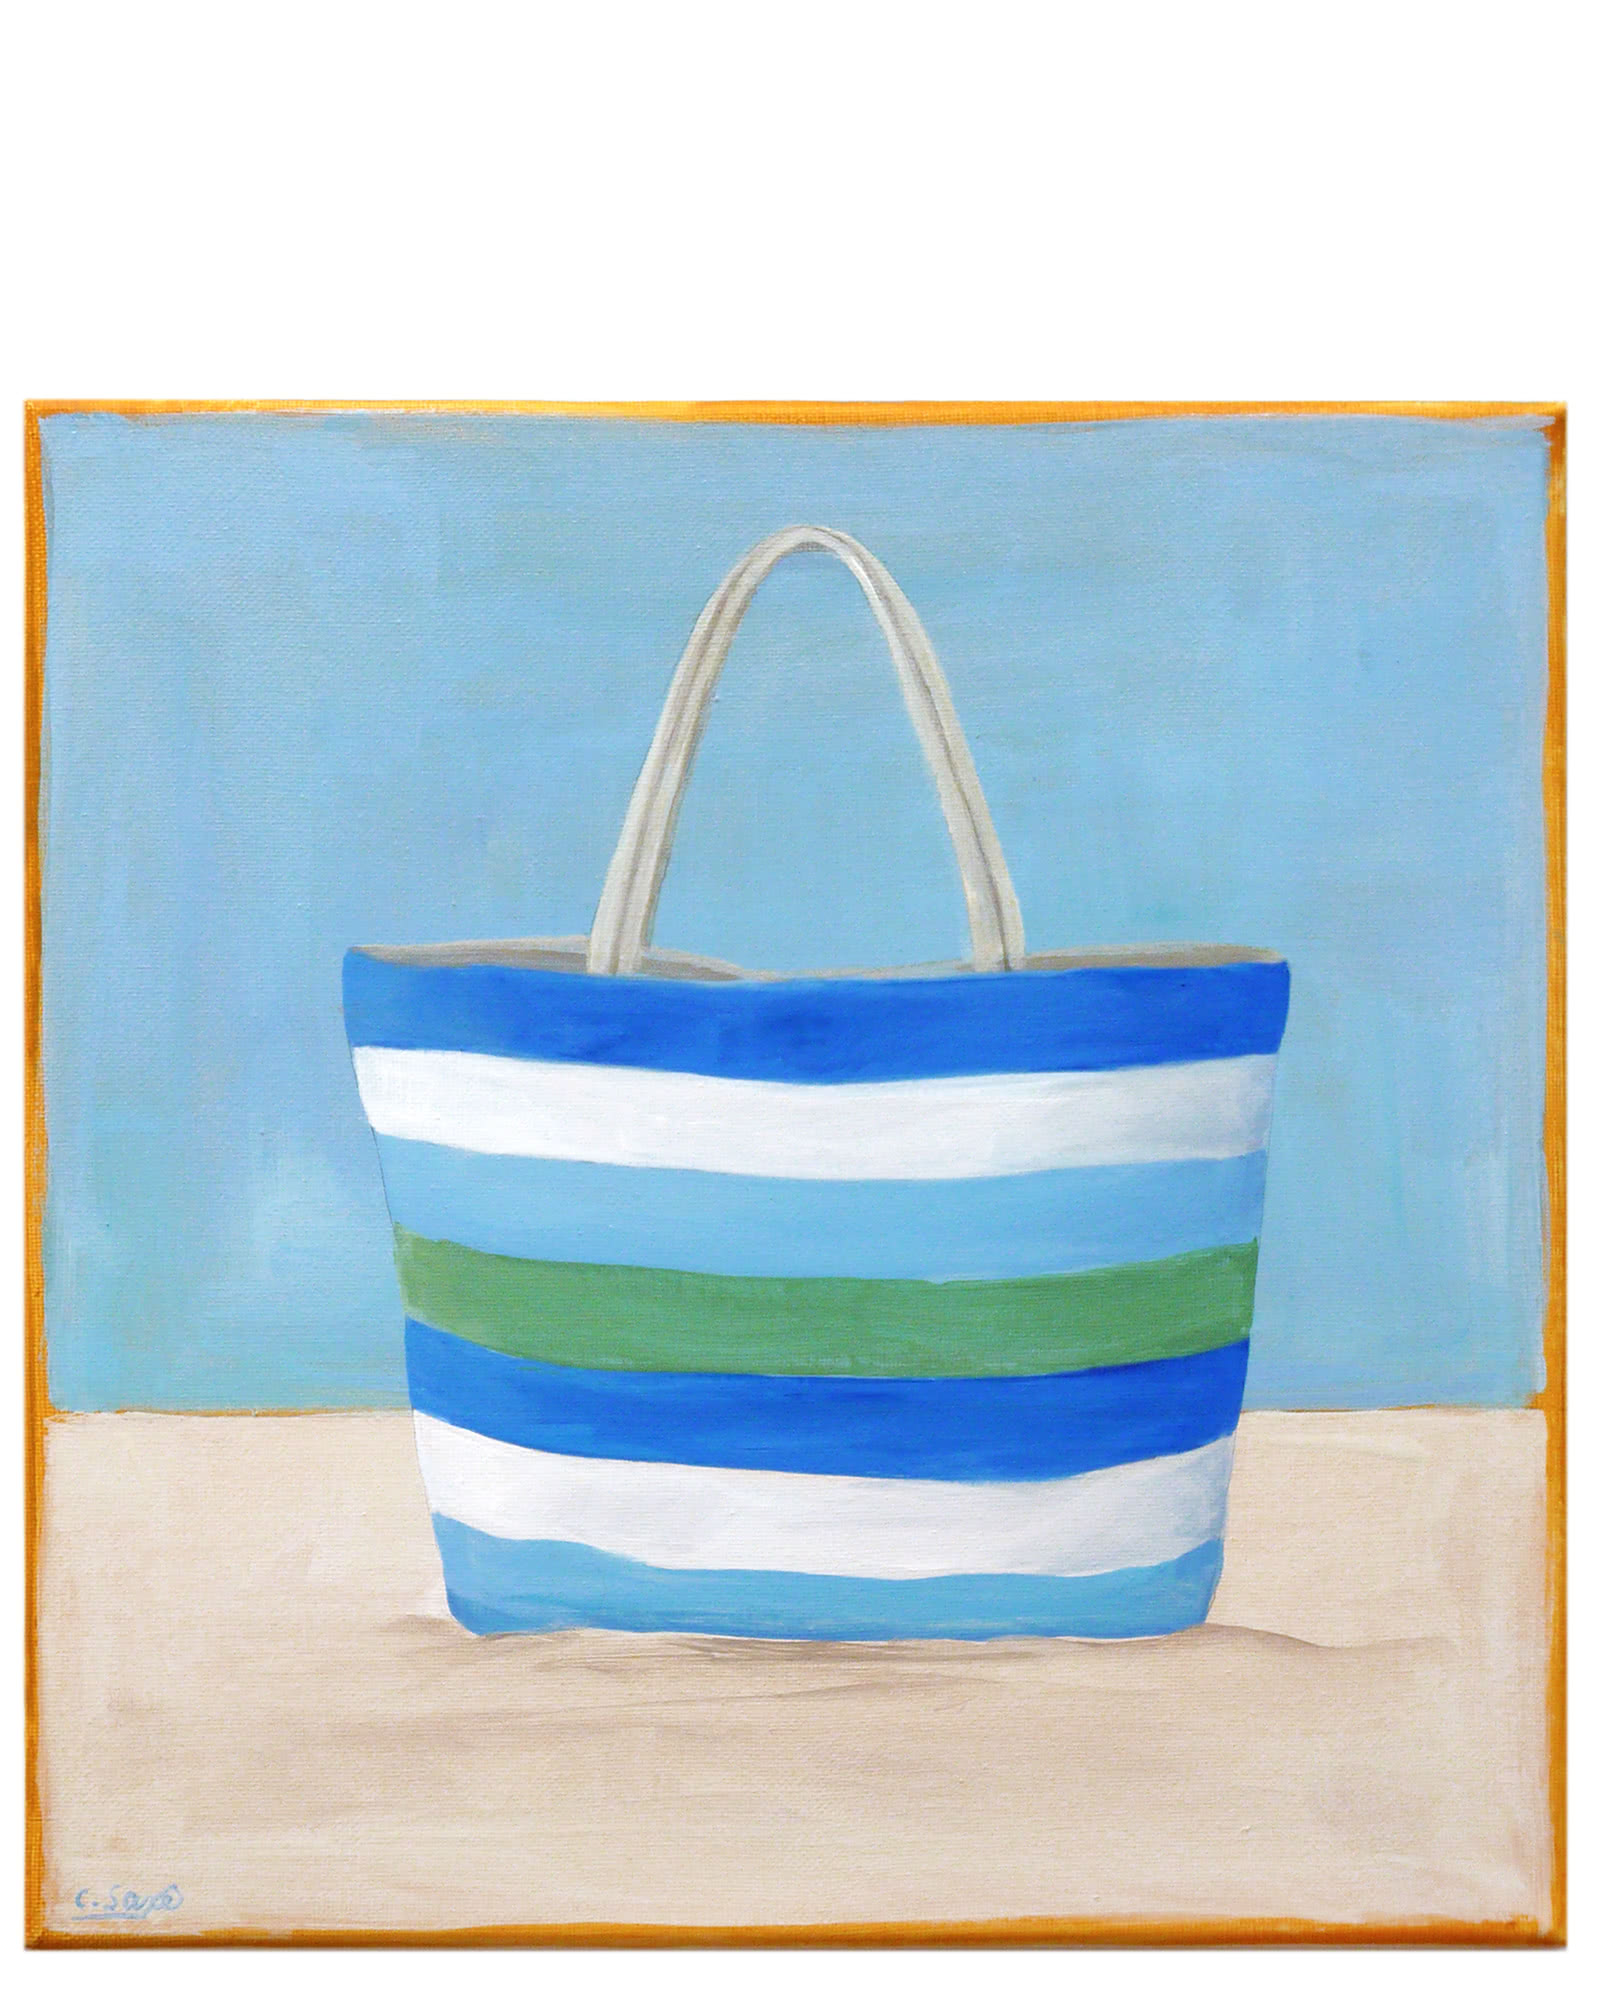 Beach Bag 35 5 By Carol Saxe